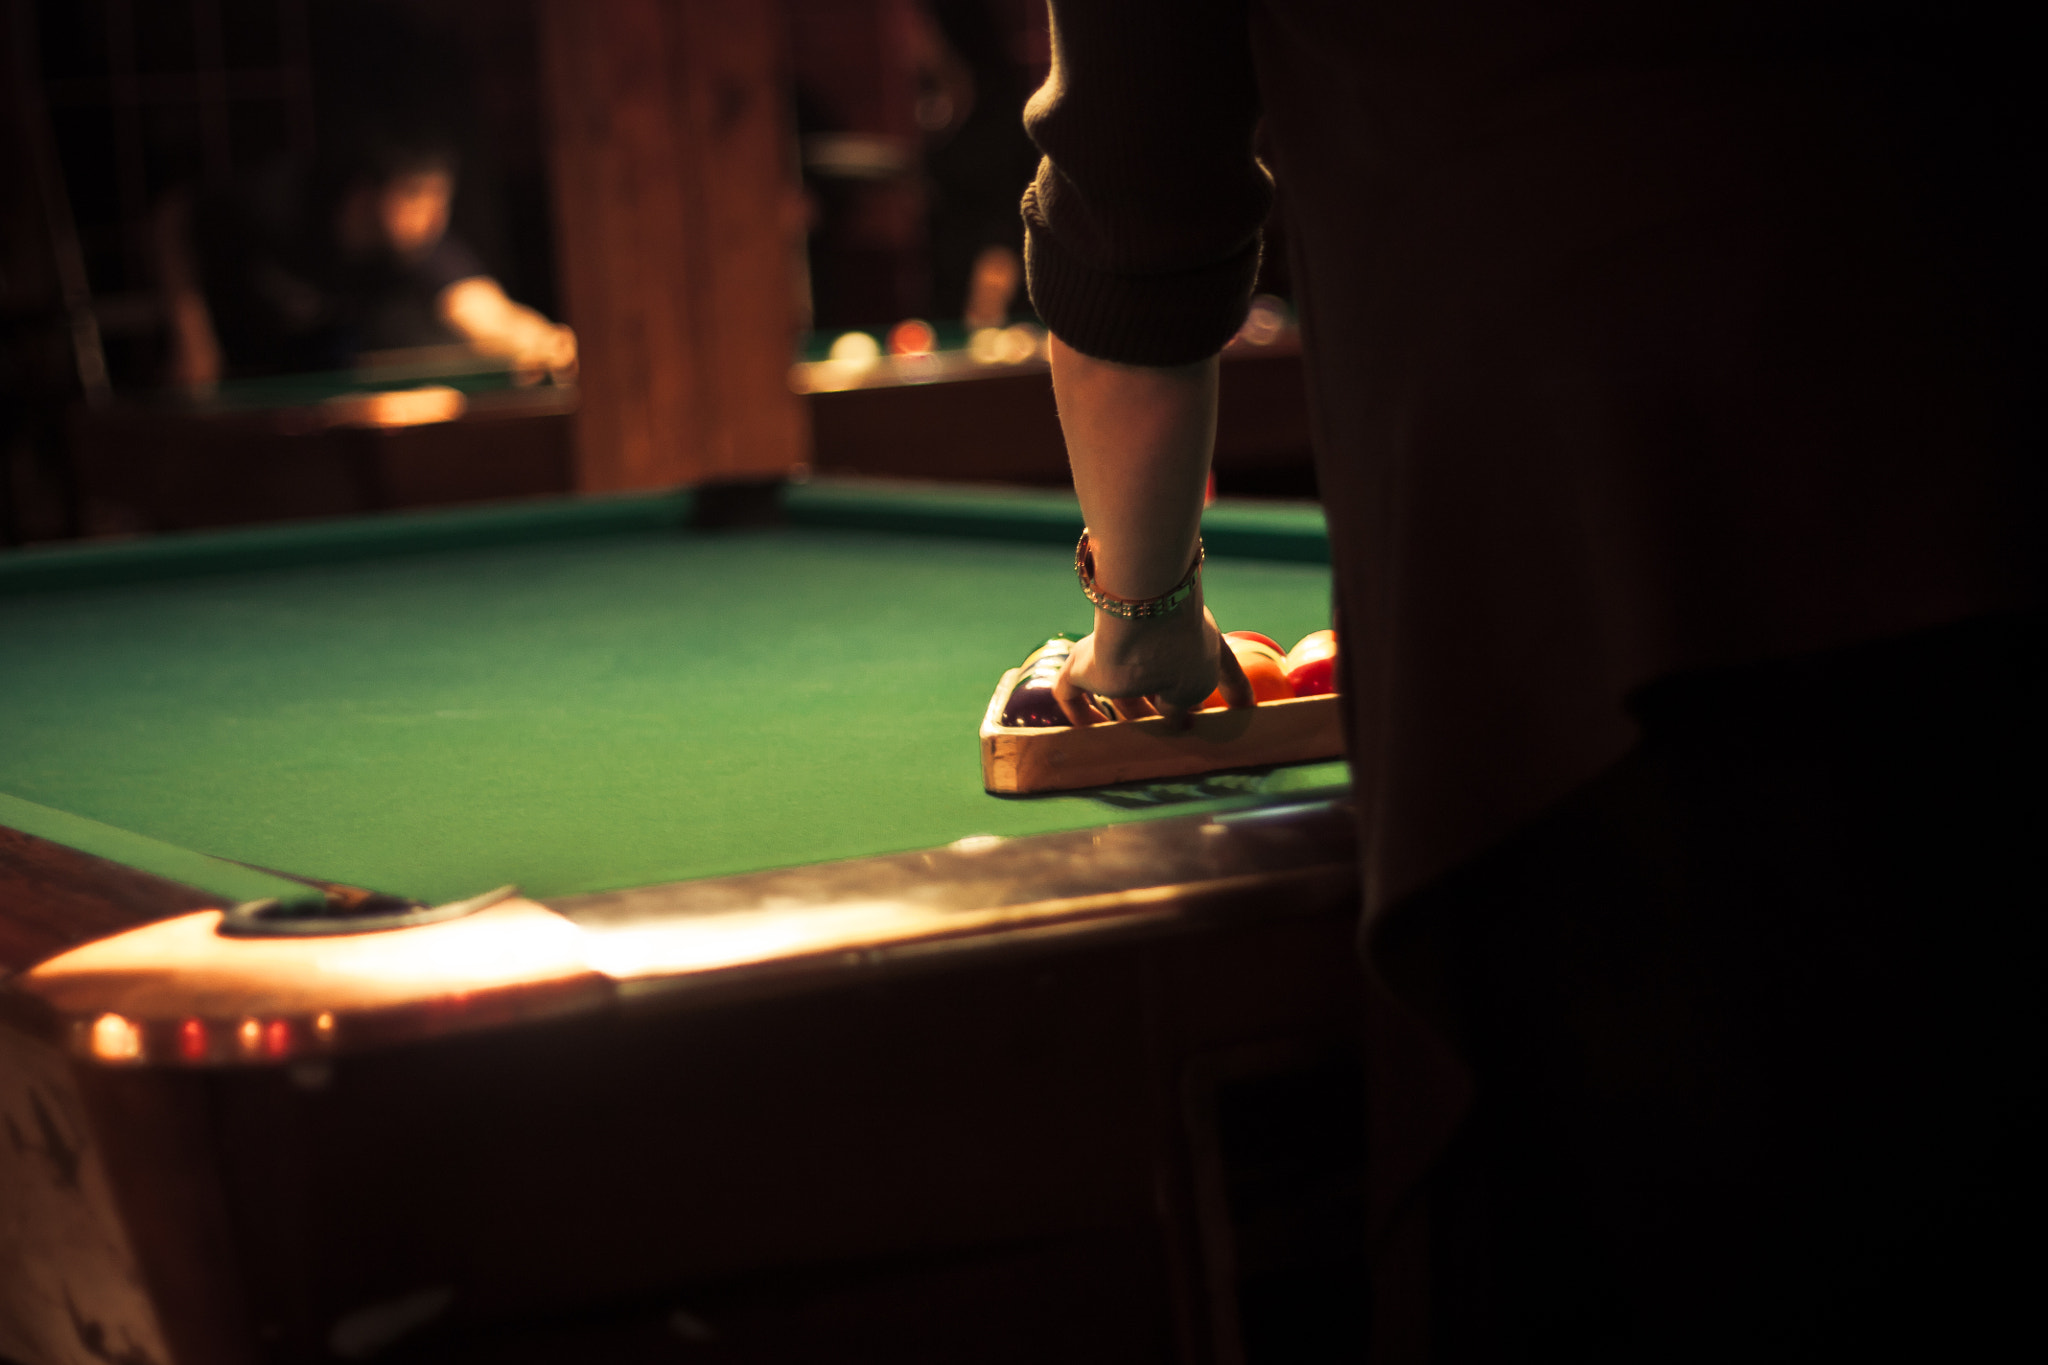 Photograph Billiards 2 - Next Game by Evan Wilson on 500px